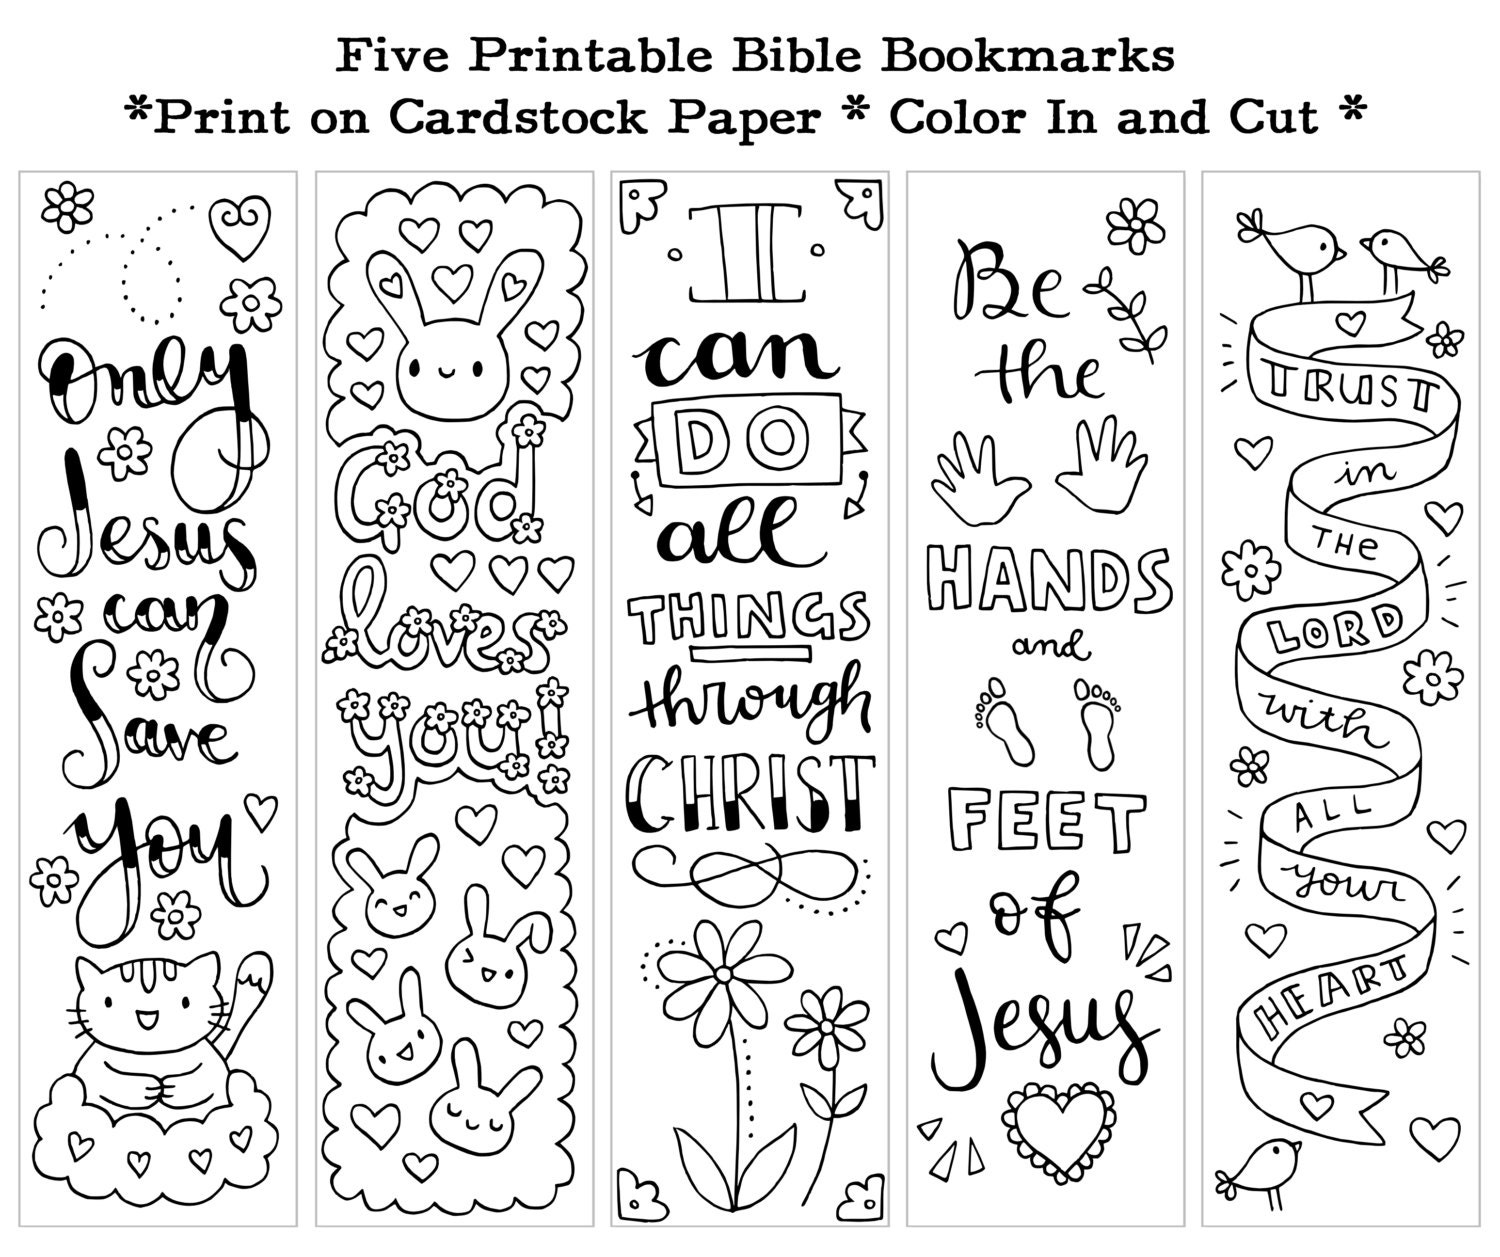 Exhilarating image in free printable bible bookmarks templates